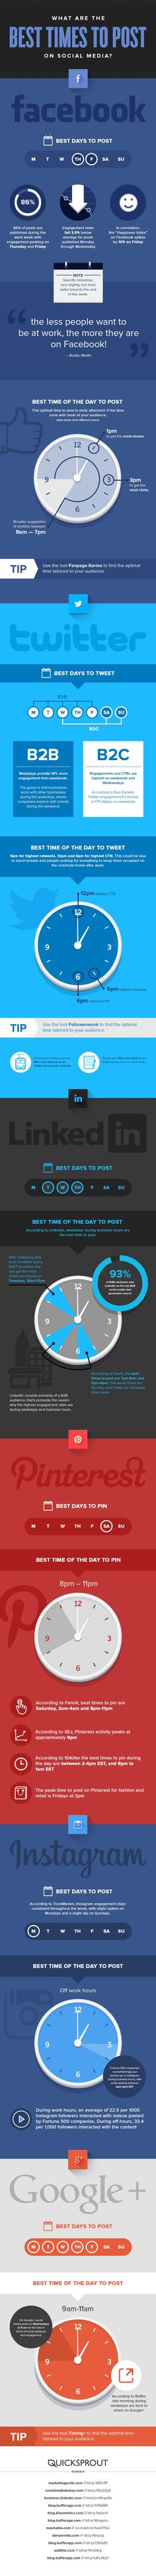 What Are The Best Times to Post on Social Media #infographic